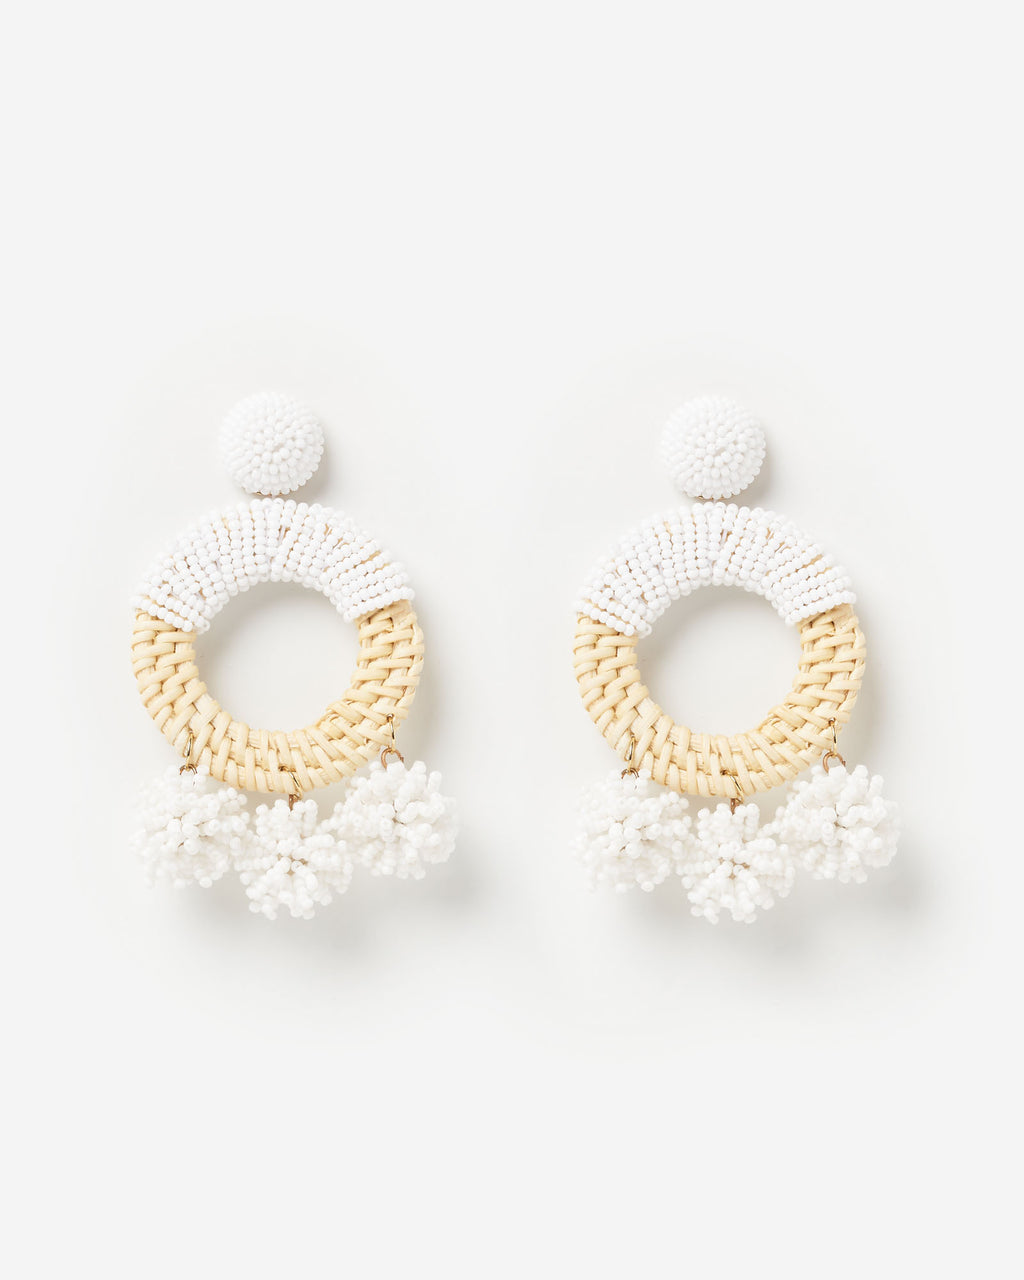 Izoa Saffron Earrings Natural White